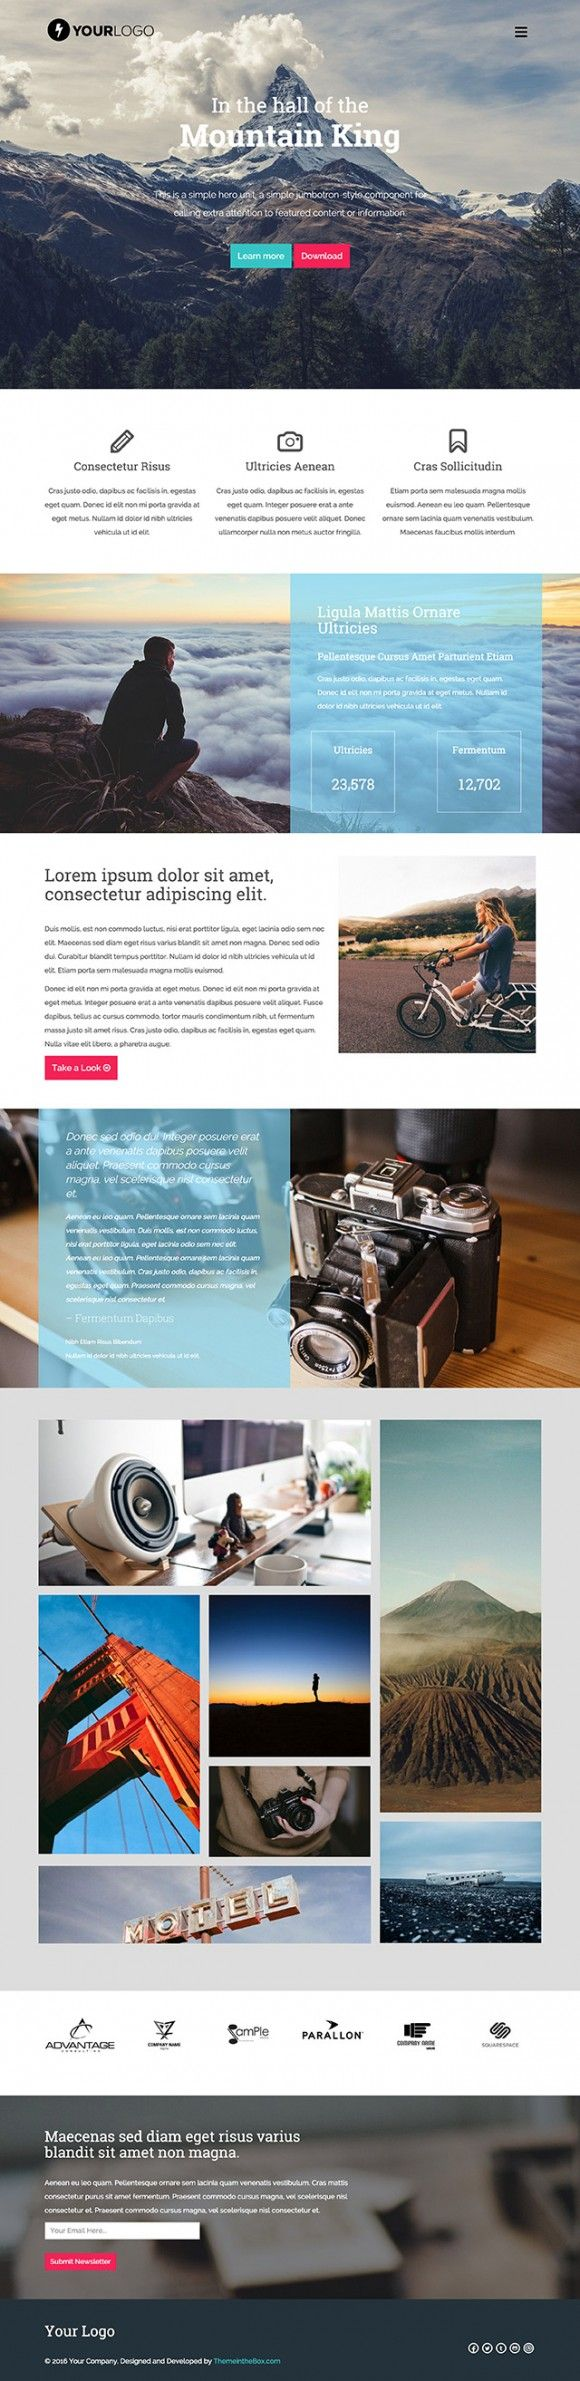 Mountain King Html Bootstrap Template Freebiesbug Simple Web Design Web Template Design Bootstrap Template